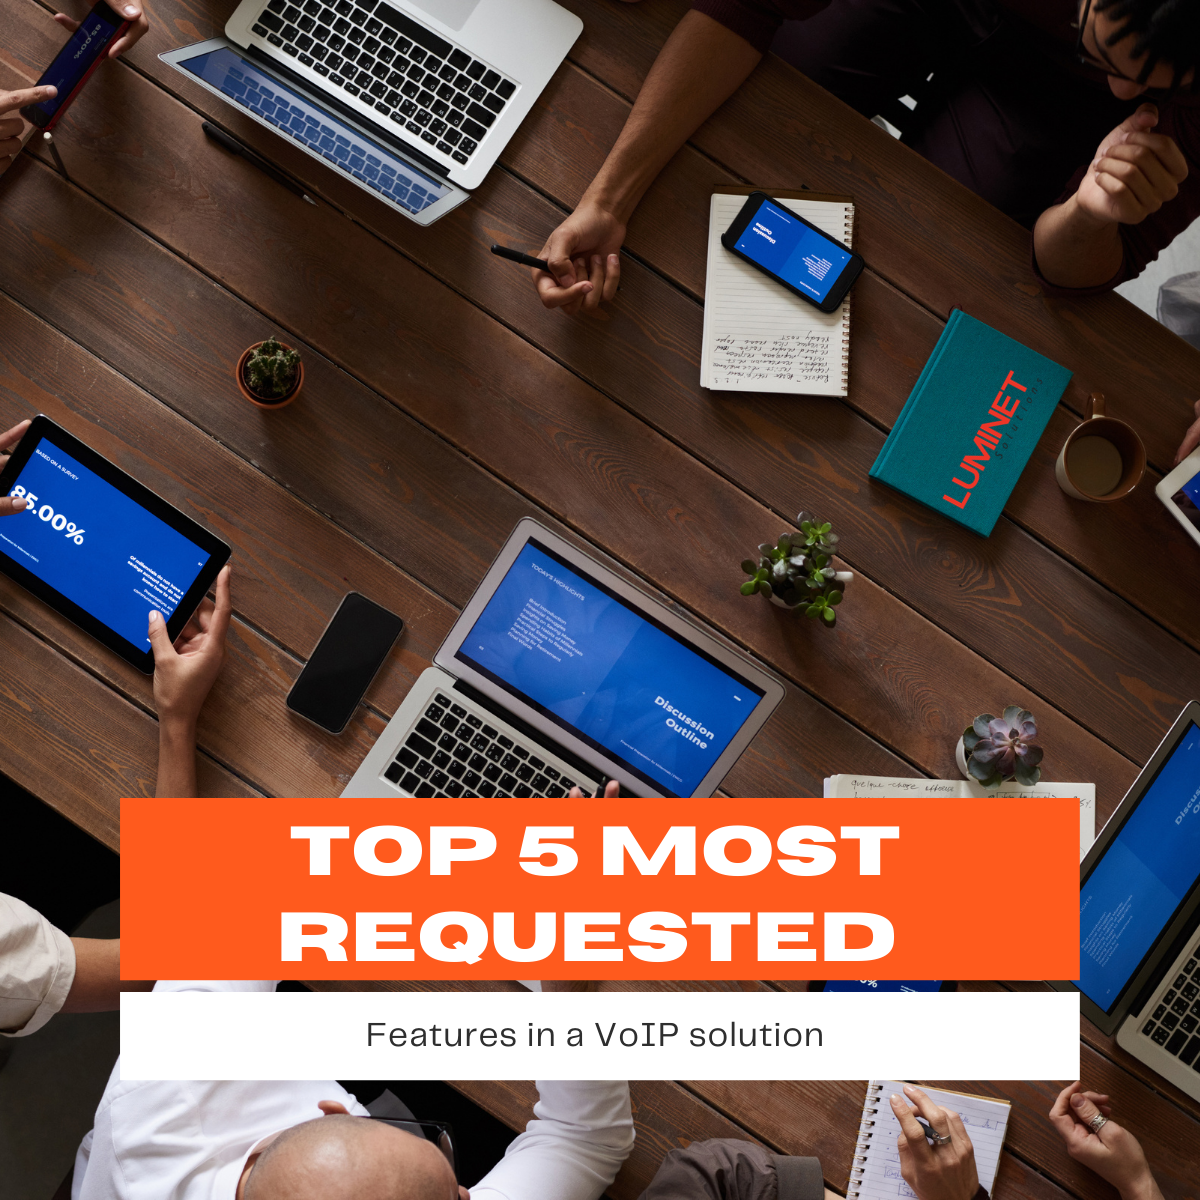 Top 5 Most Requested Features In A VoIP Solution